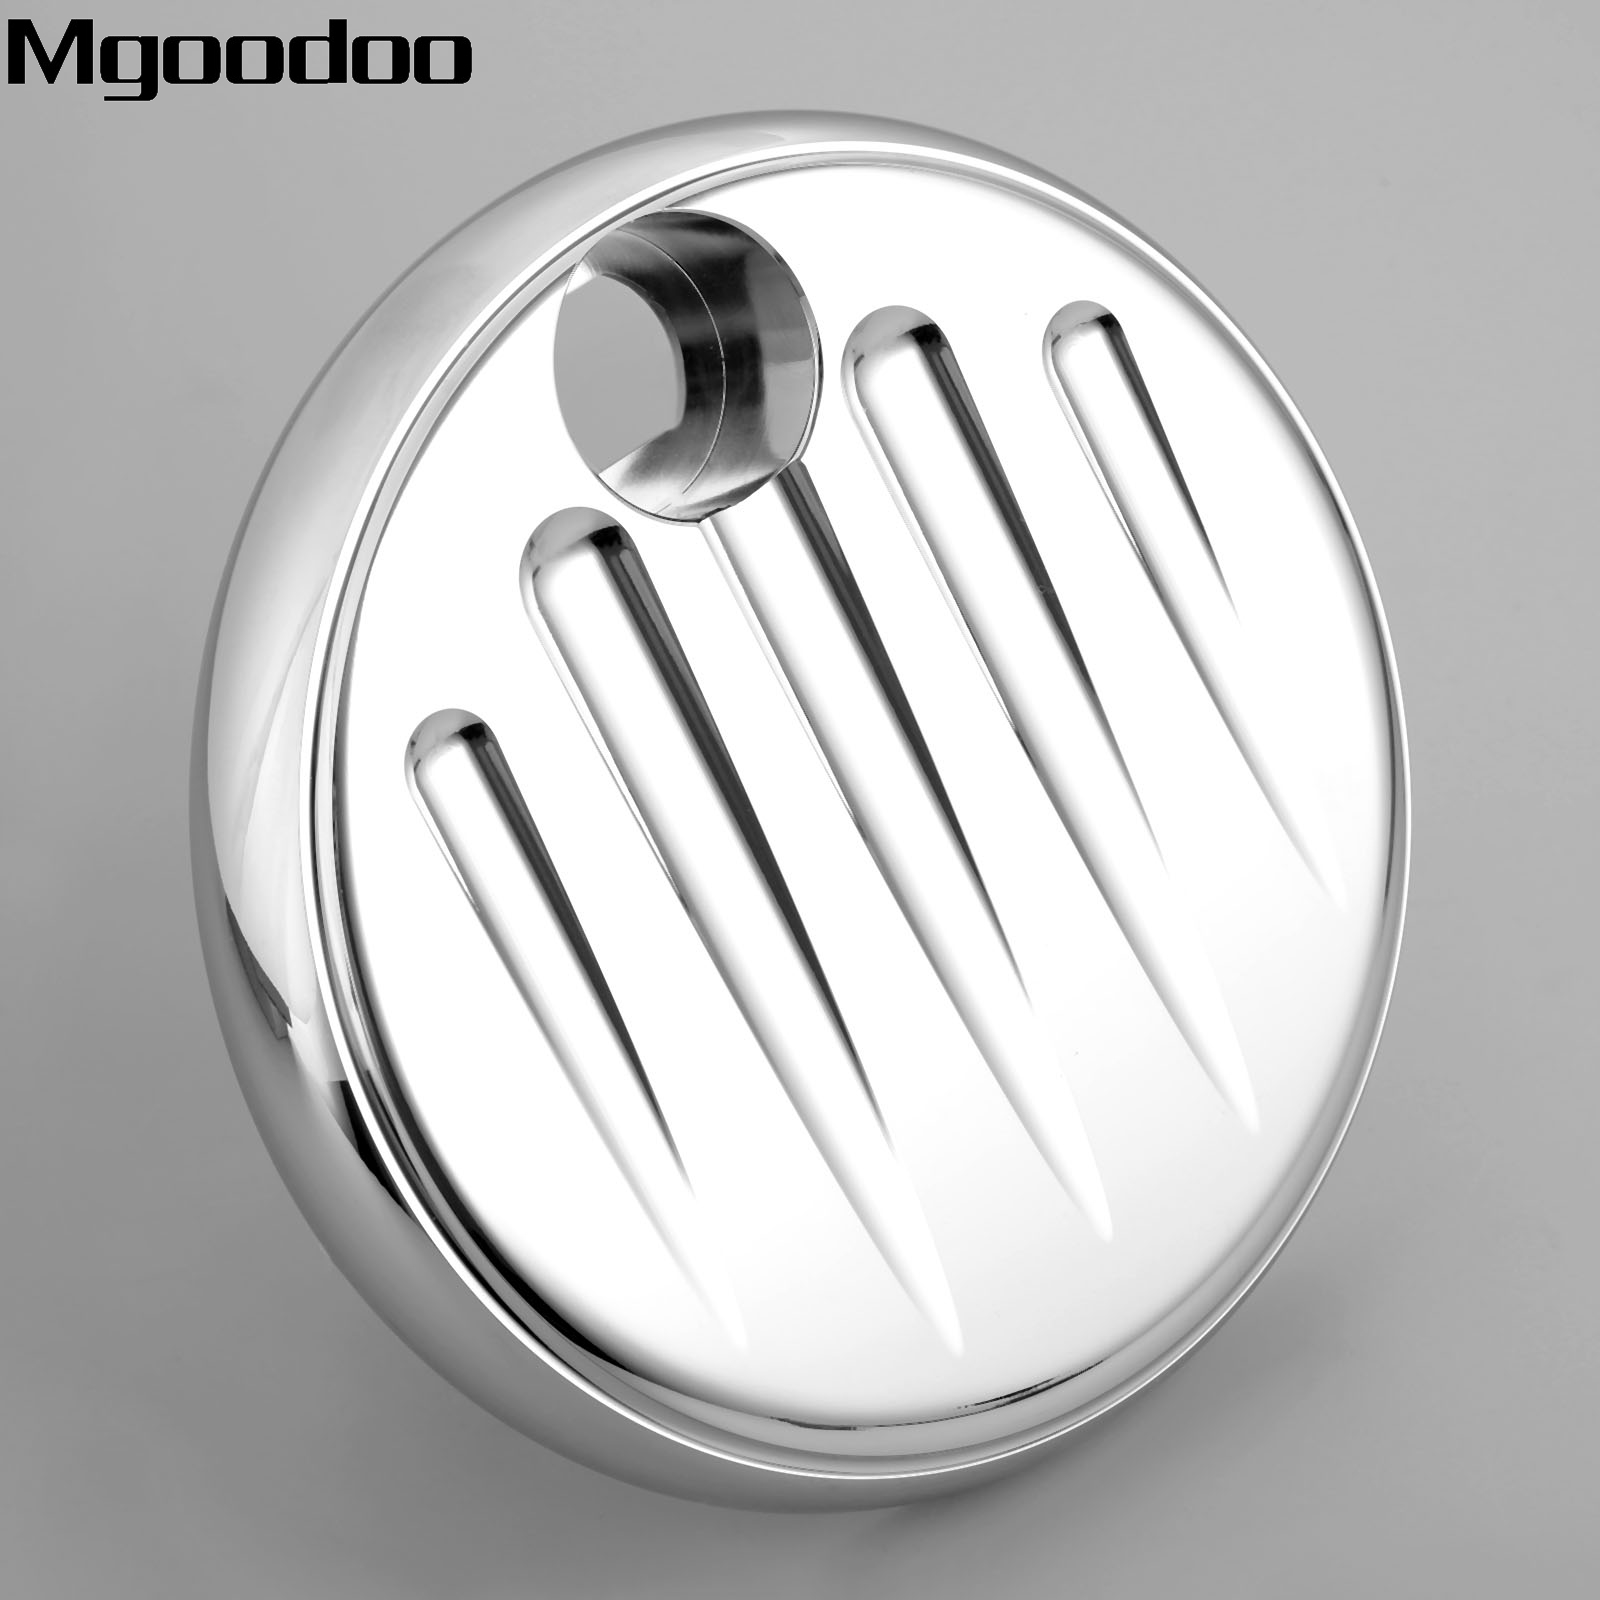 New Chrome Aluminum Motorcycle Deep Cut Contrast Gas Fuel Tank Console Door Cover For Harley Touring 2008-2016 FLHX FLTR FLHT<br>